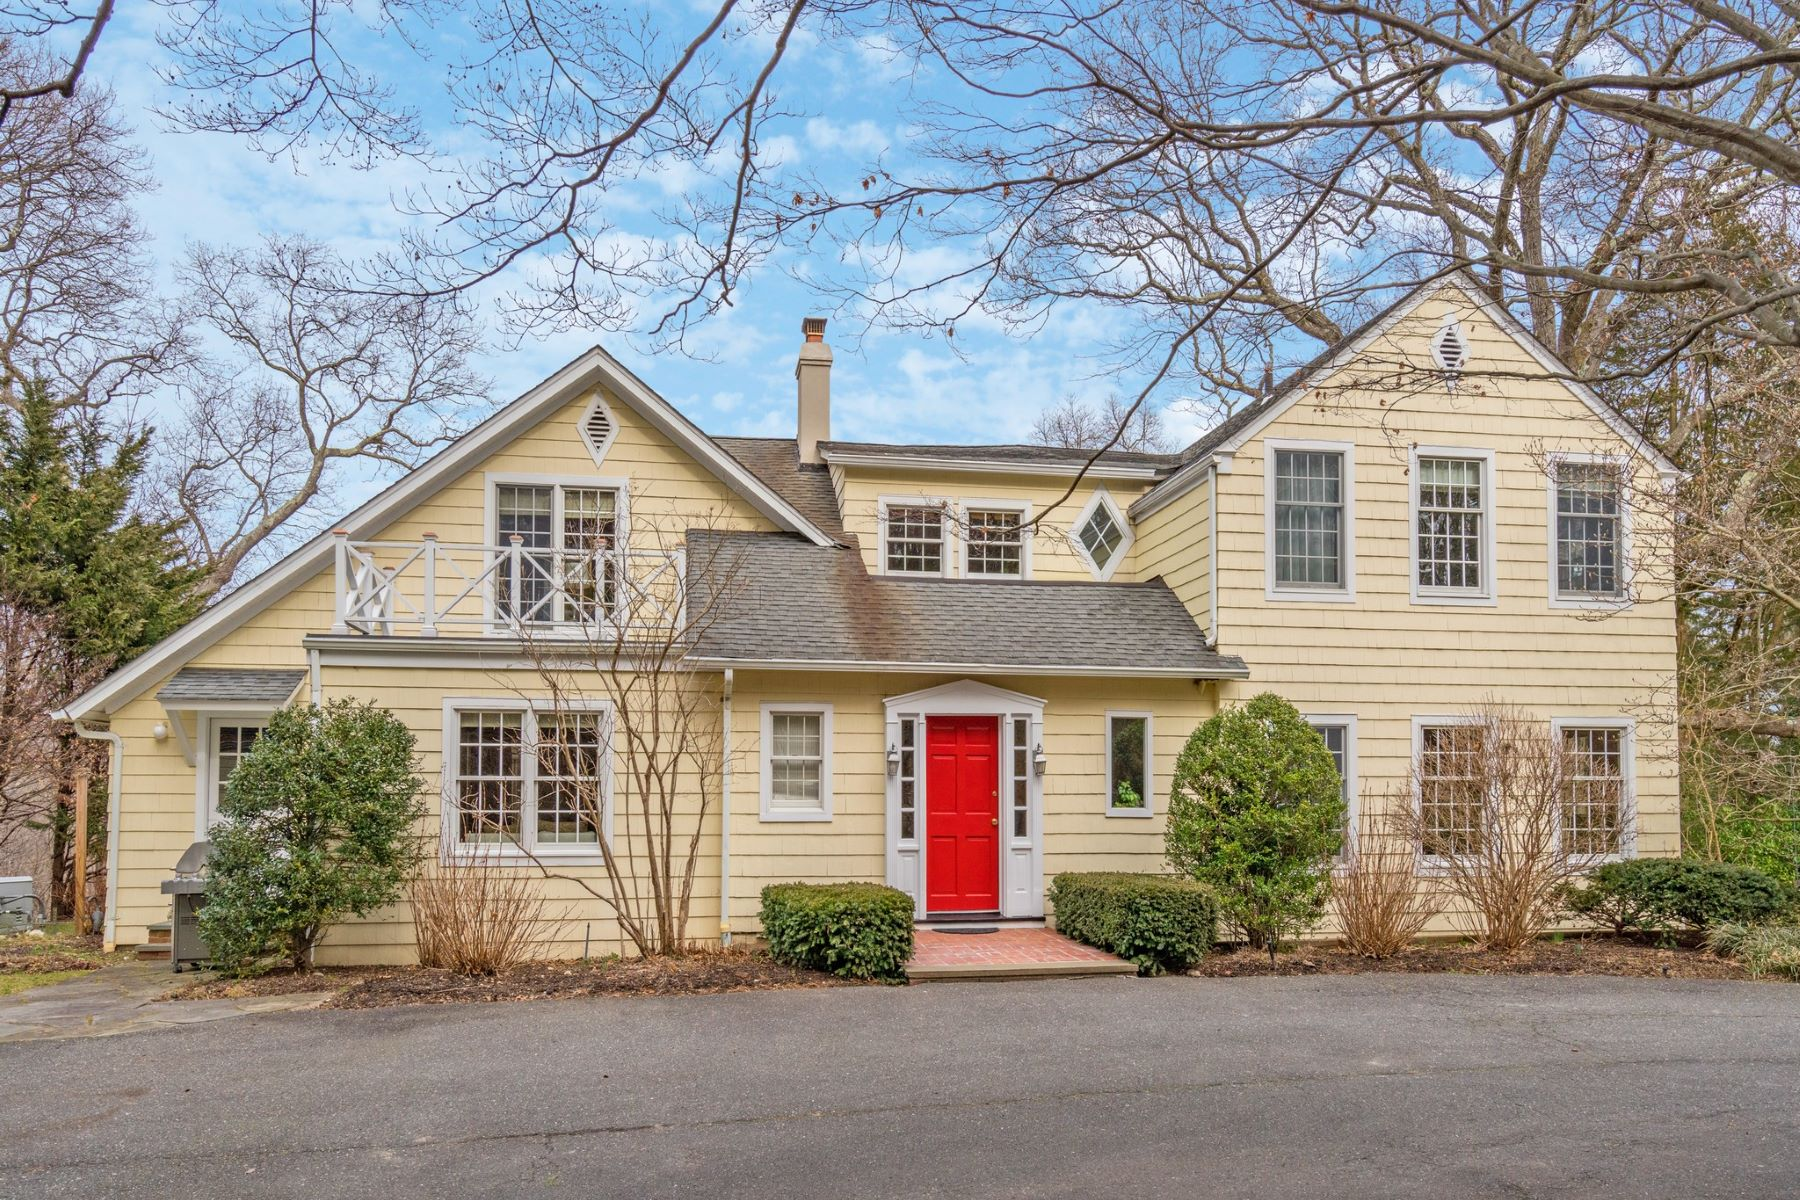 Single Family Homes for Sale at Laurel Hollow 1348 Ridge Road Laurel Hollow, New York 11791 United States